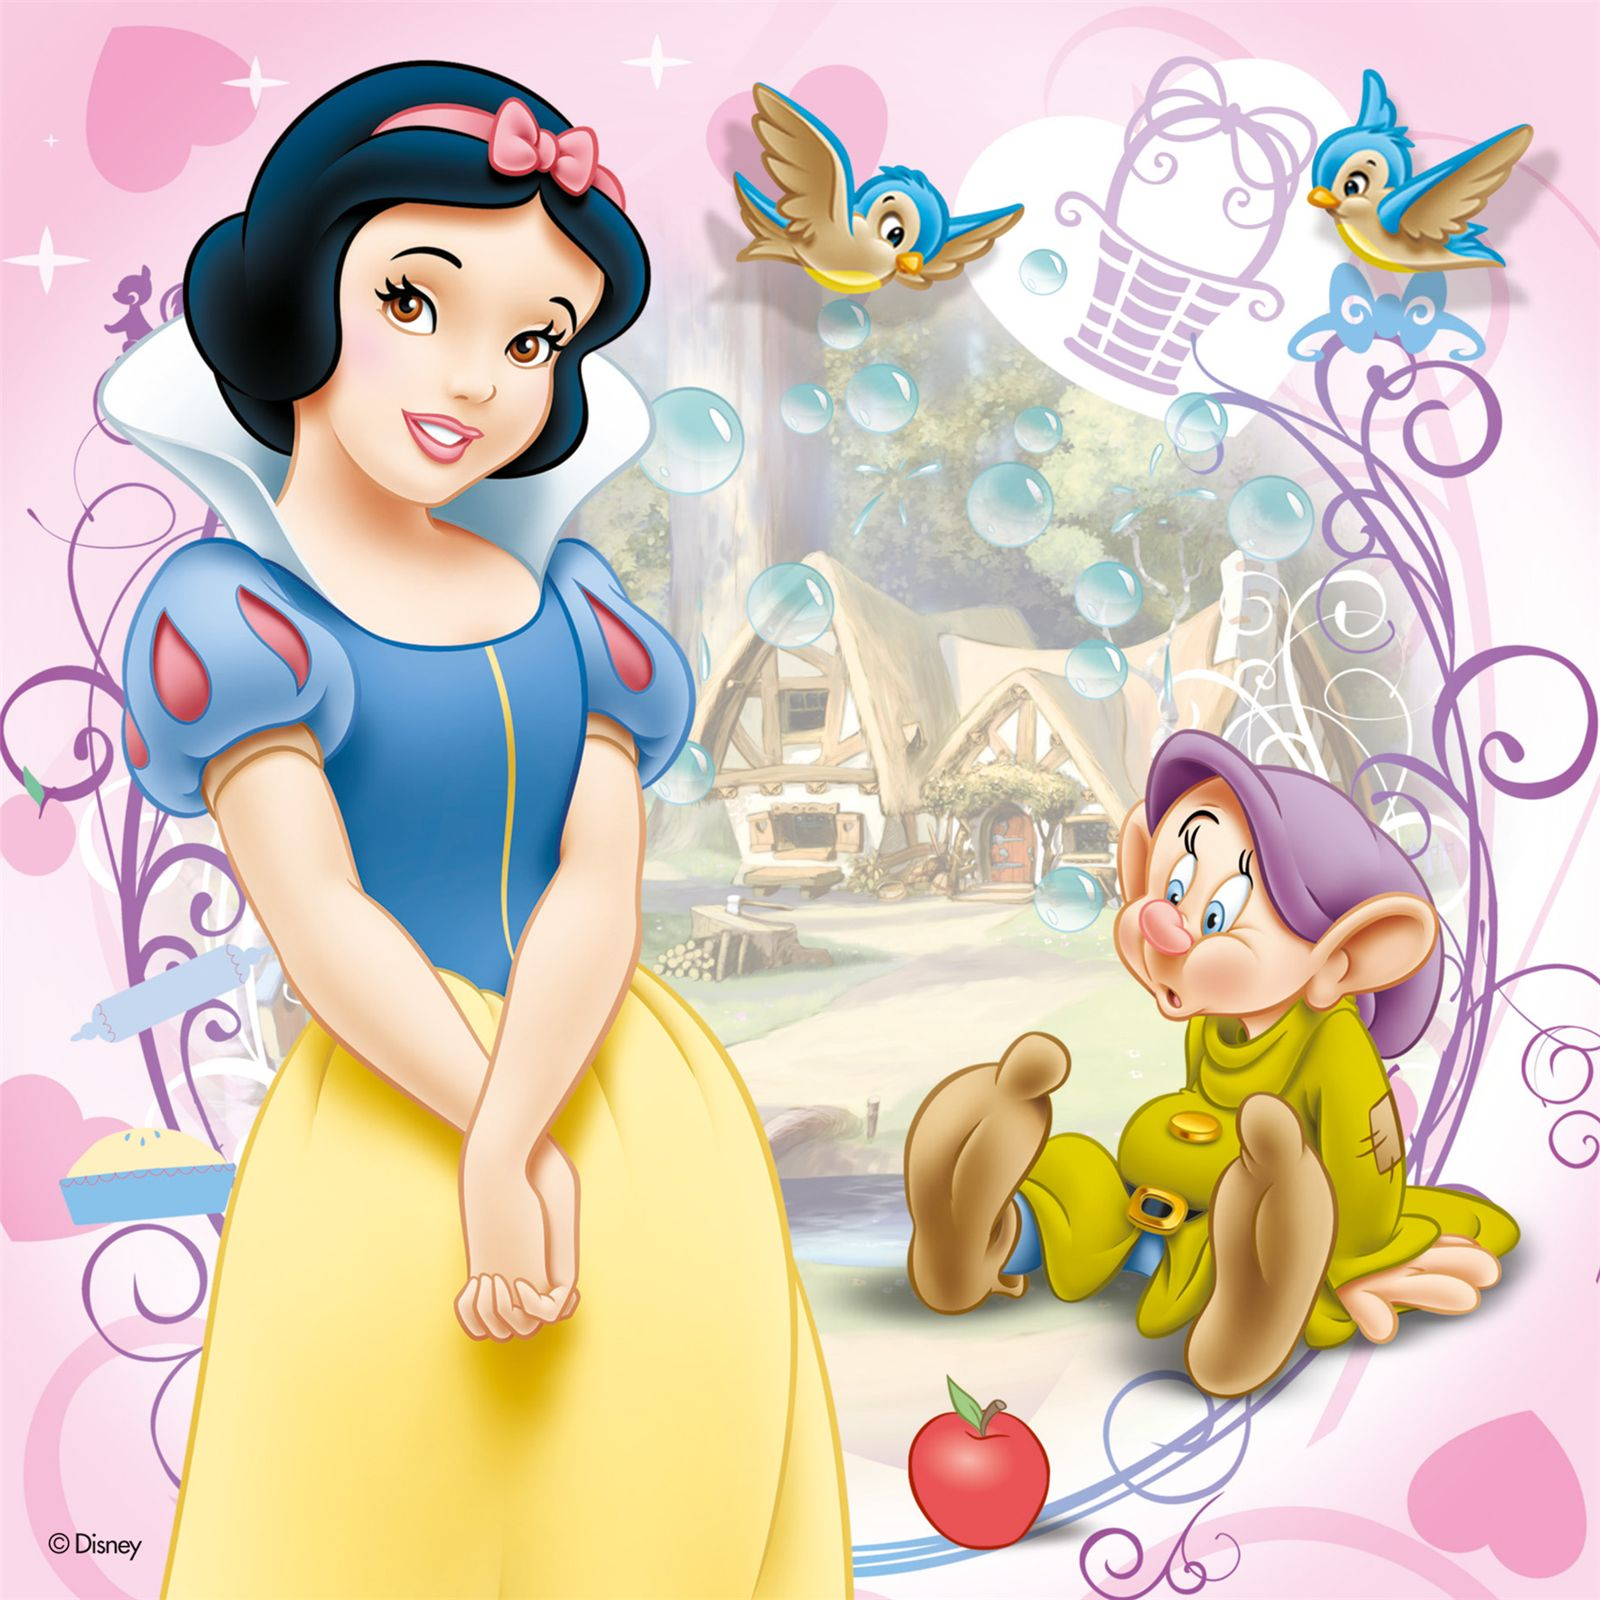 Snow white and the cannon balls